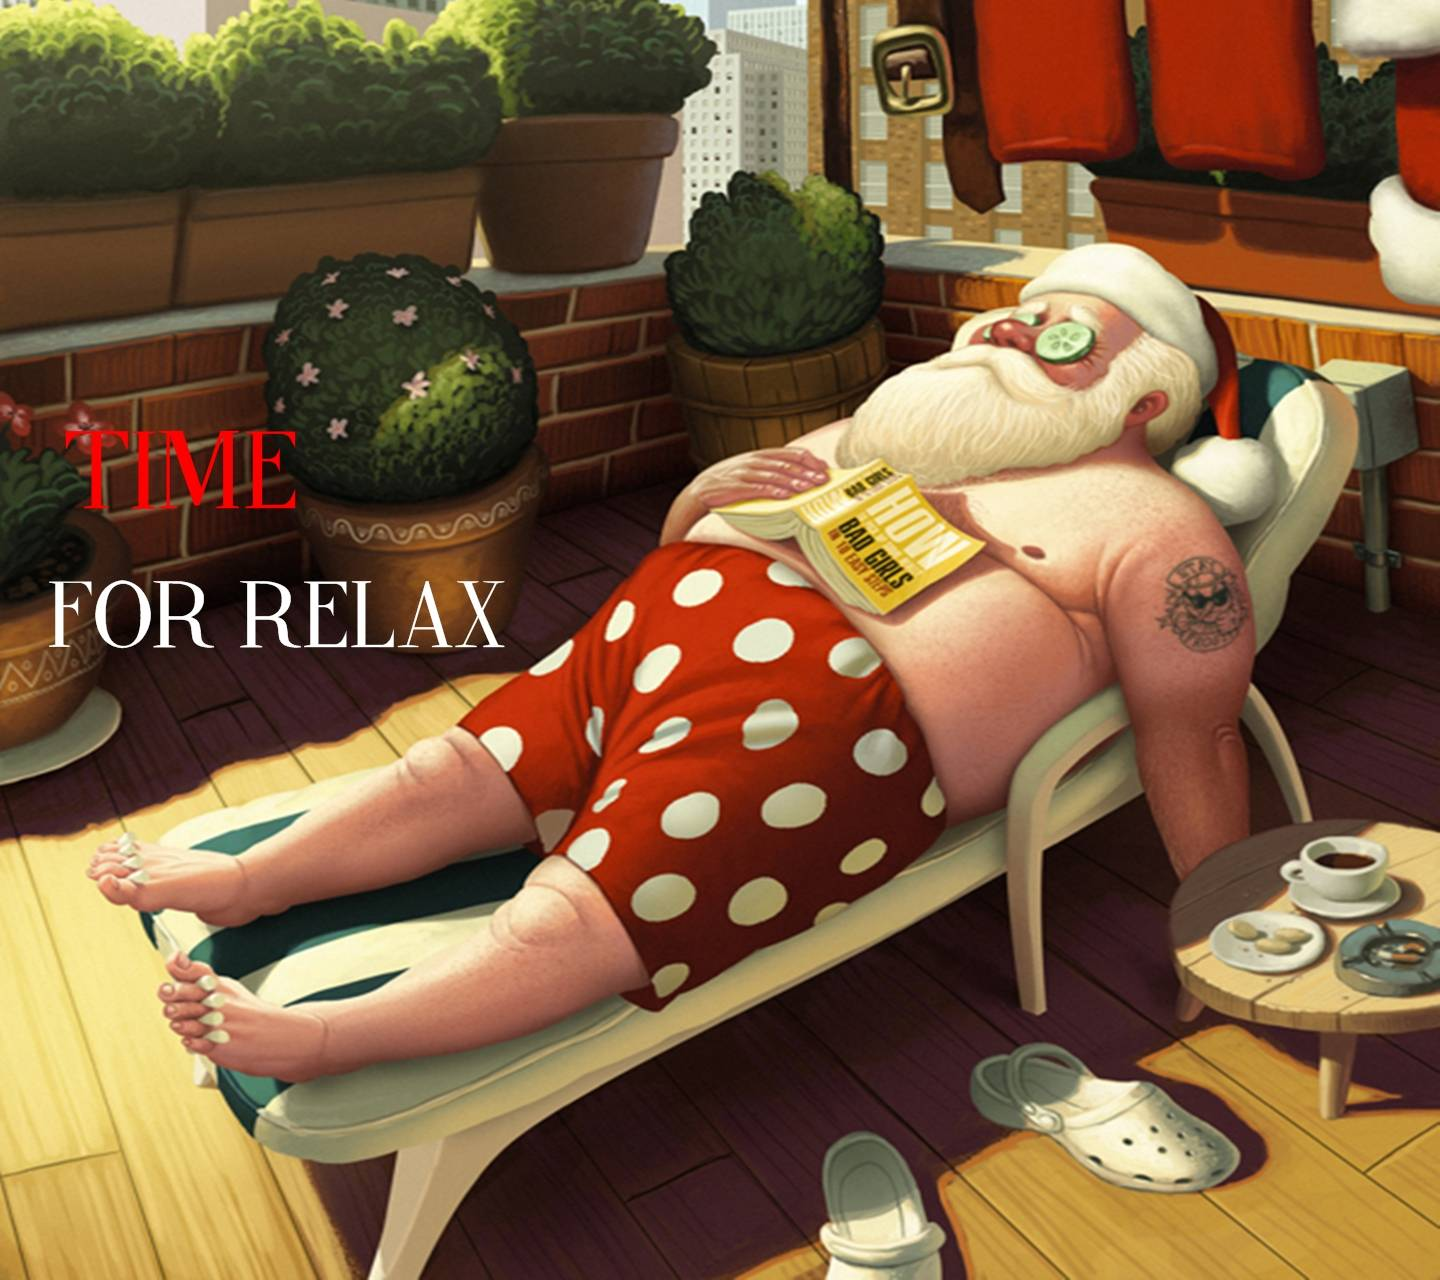 Time For Relax